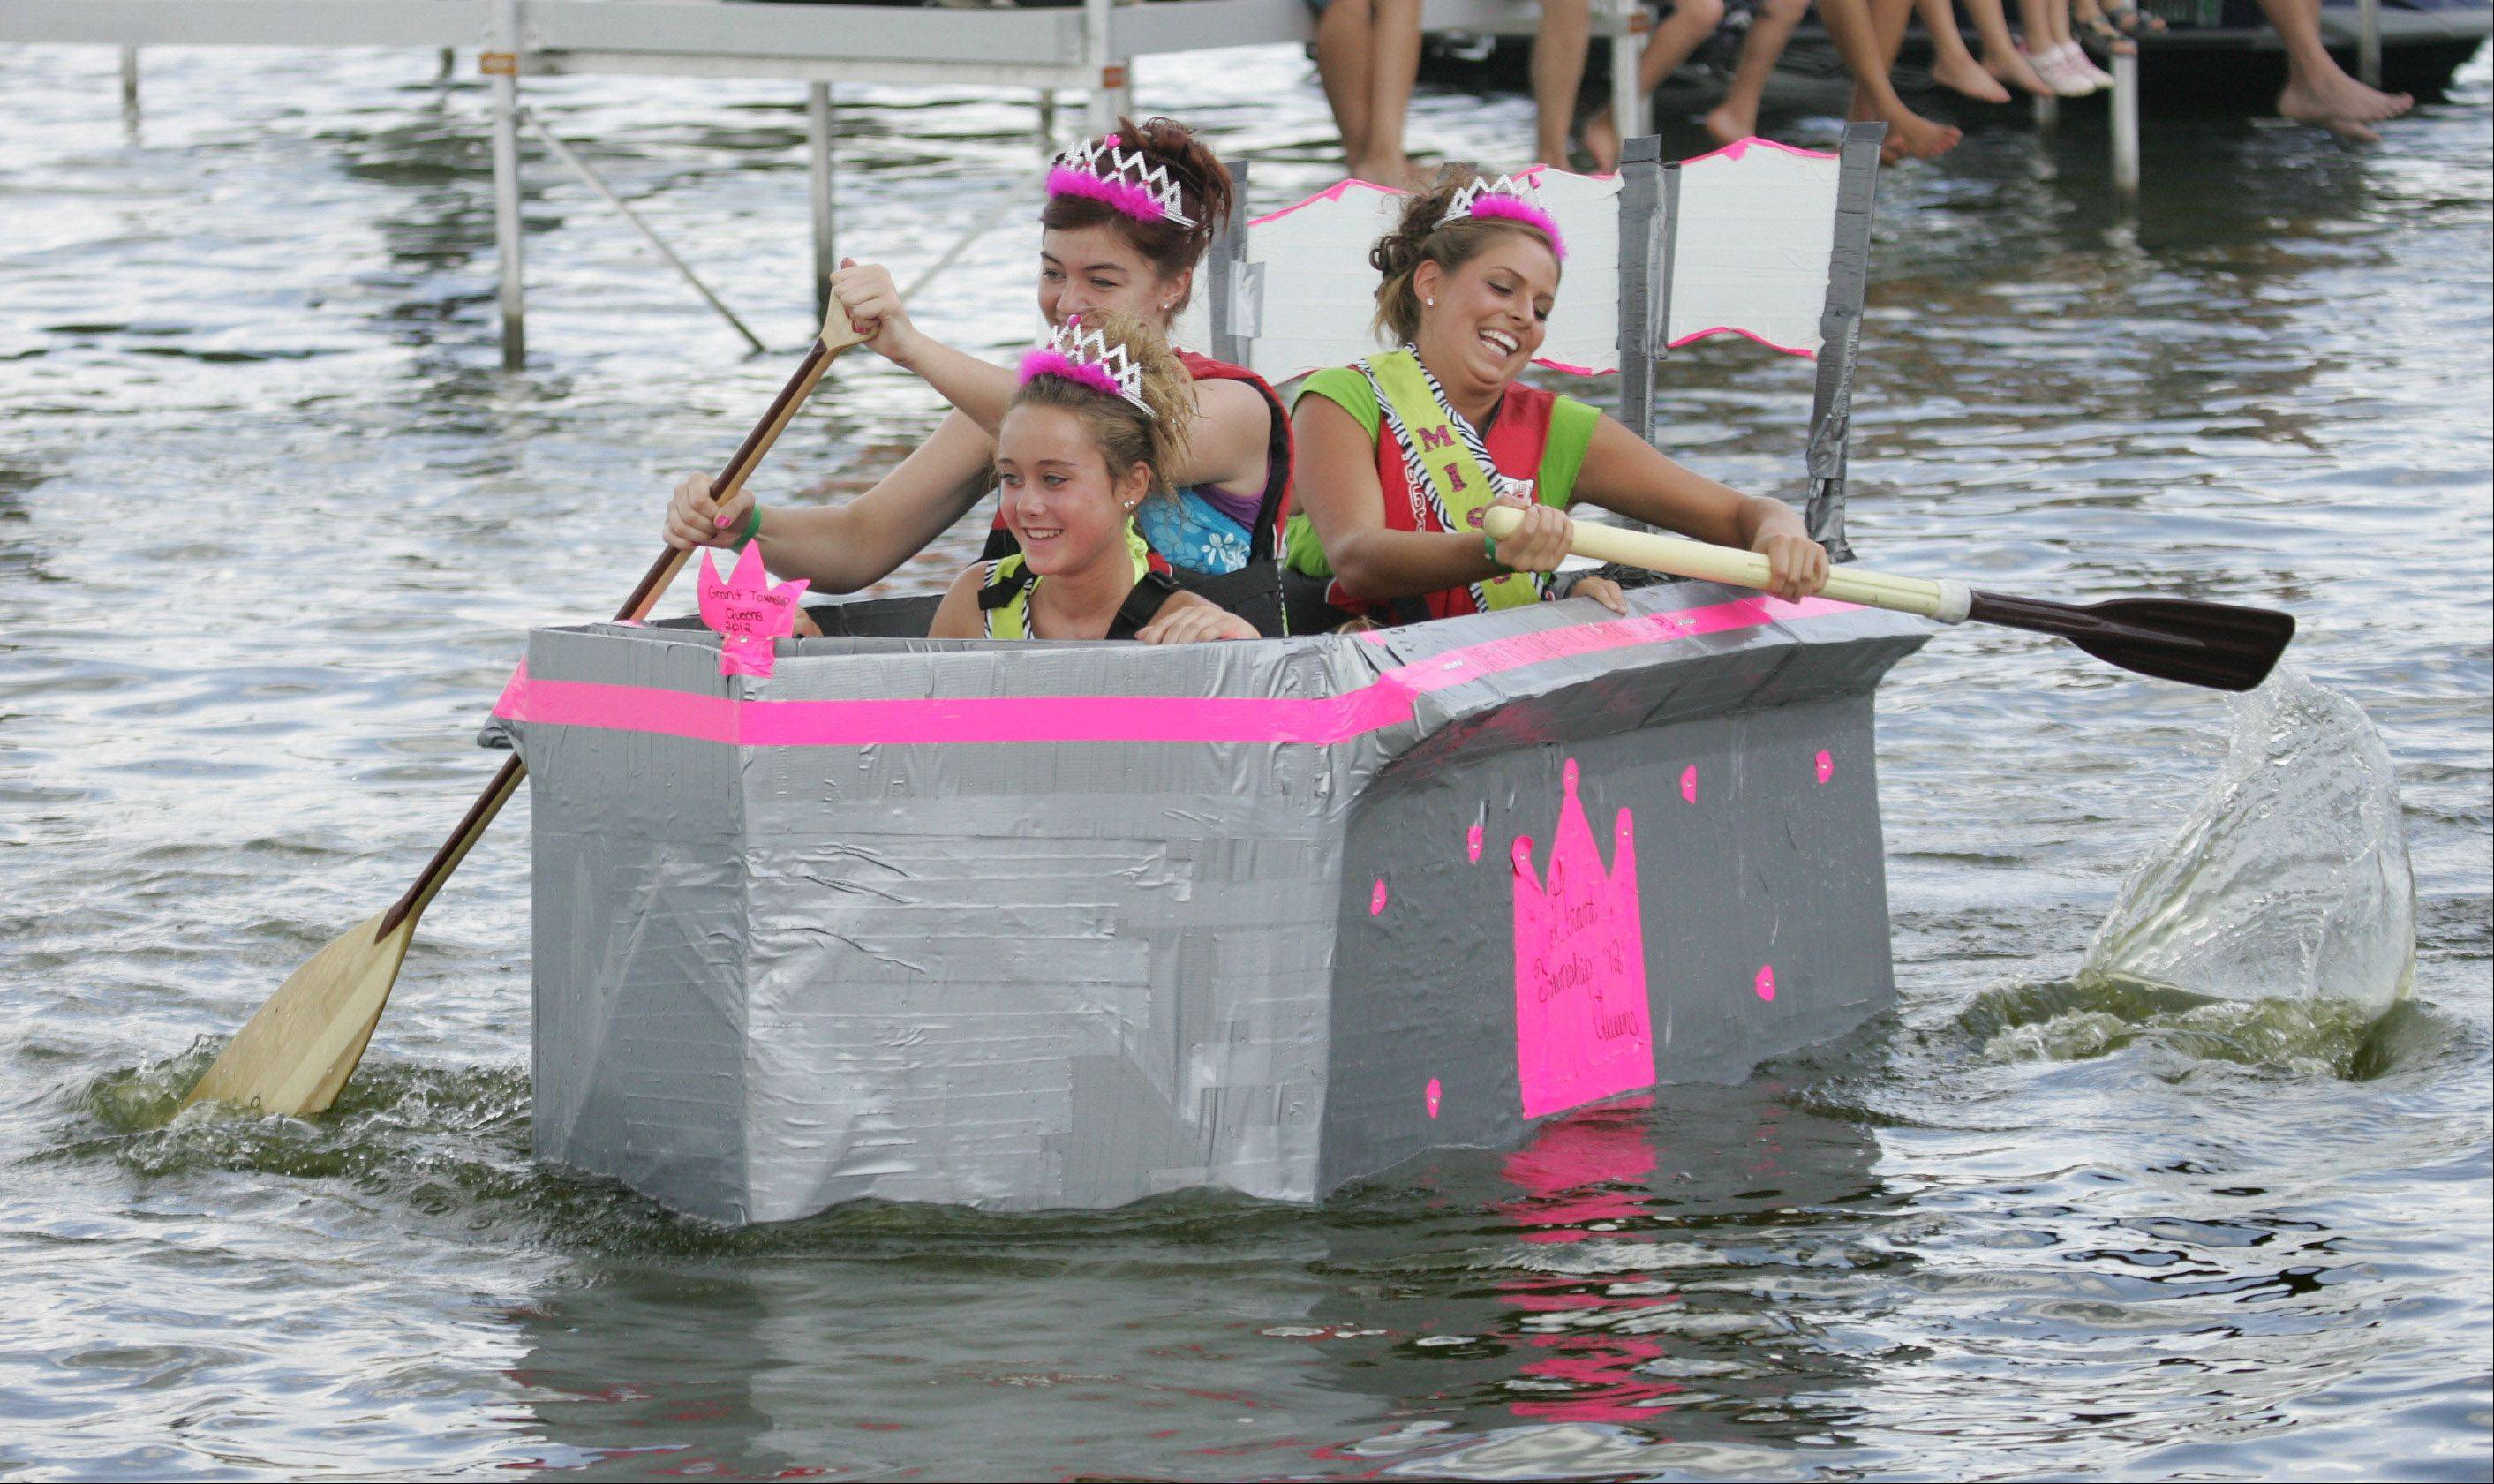 Grant Township queens Junior Miss Gabriela Schoenberg, front, Teen Miss Jessie Burdett, and Miss Bethani Jacobsen paddle their boat along the racecourse during the annual Cardboard Cup Regatta Sunday at Lakefront Park sponsored by the Village of Fox Lake Parks and Recreation Department. Contestants built boats made strictly of cardboard, duct tape and paint and raced for medals and trophies.